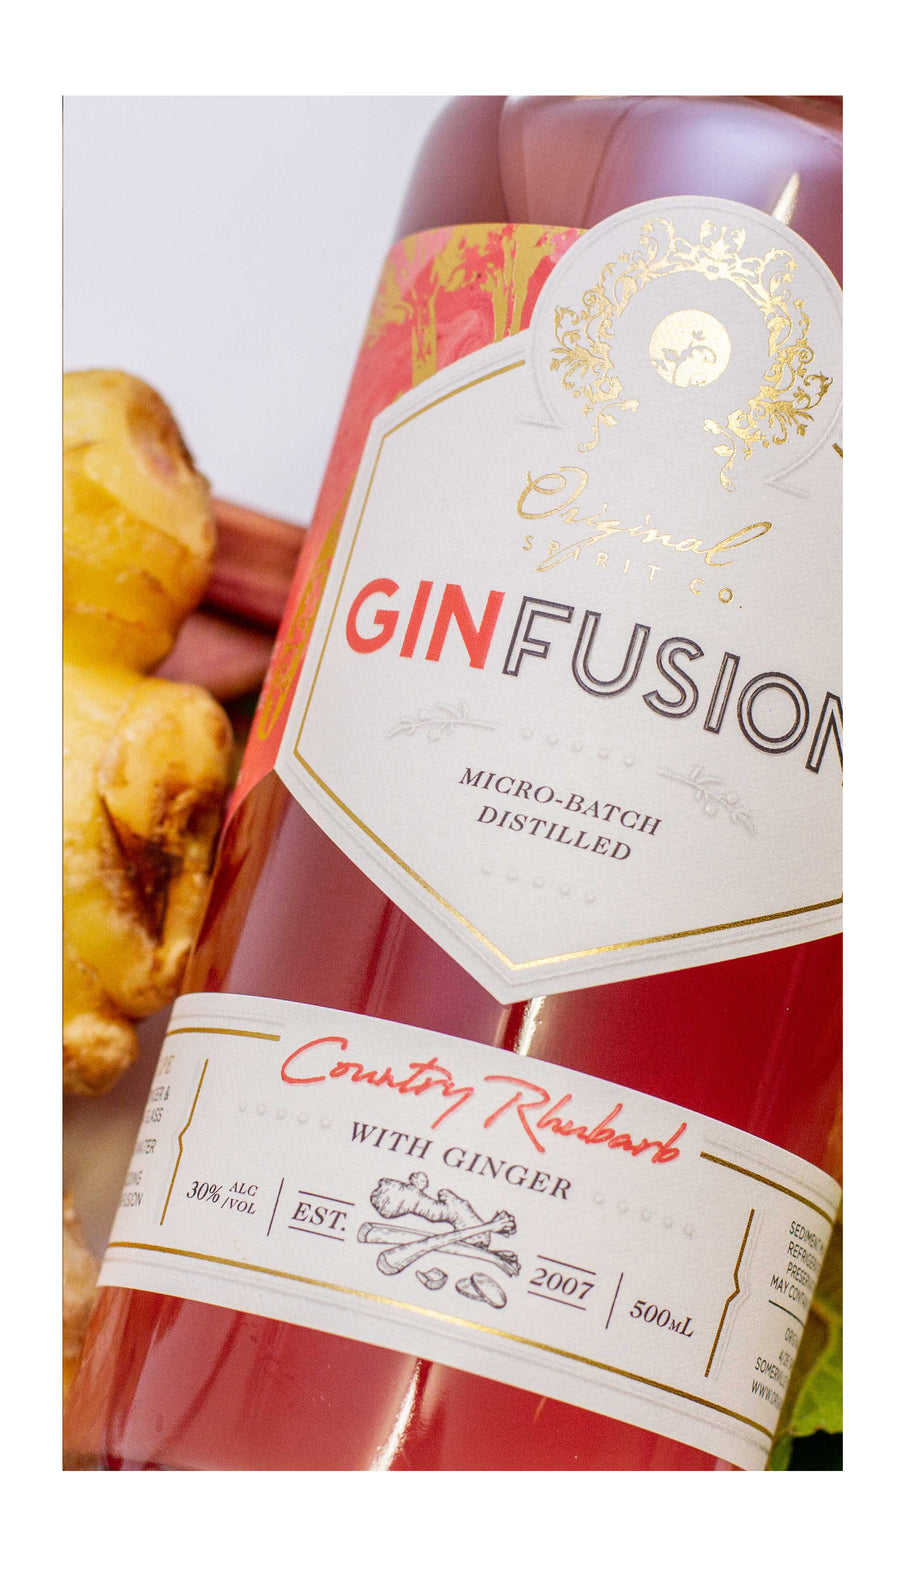 Rhubarb and Ginger Gin from the Mornington Peninsula